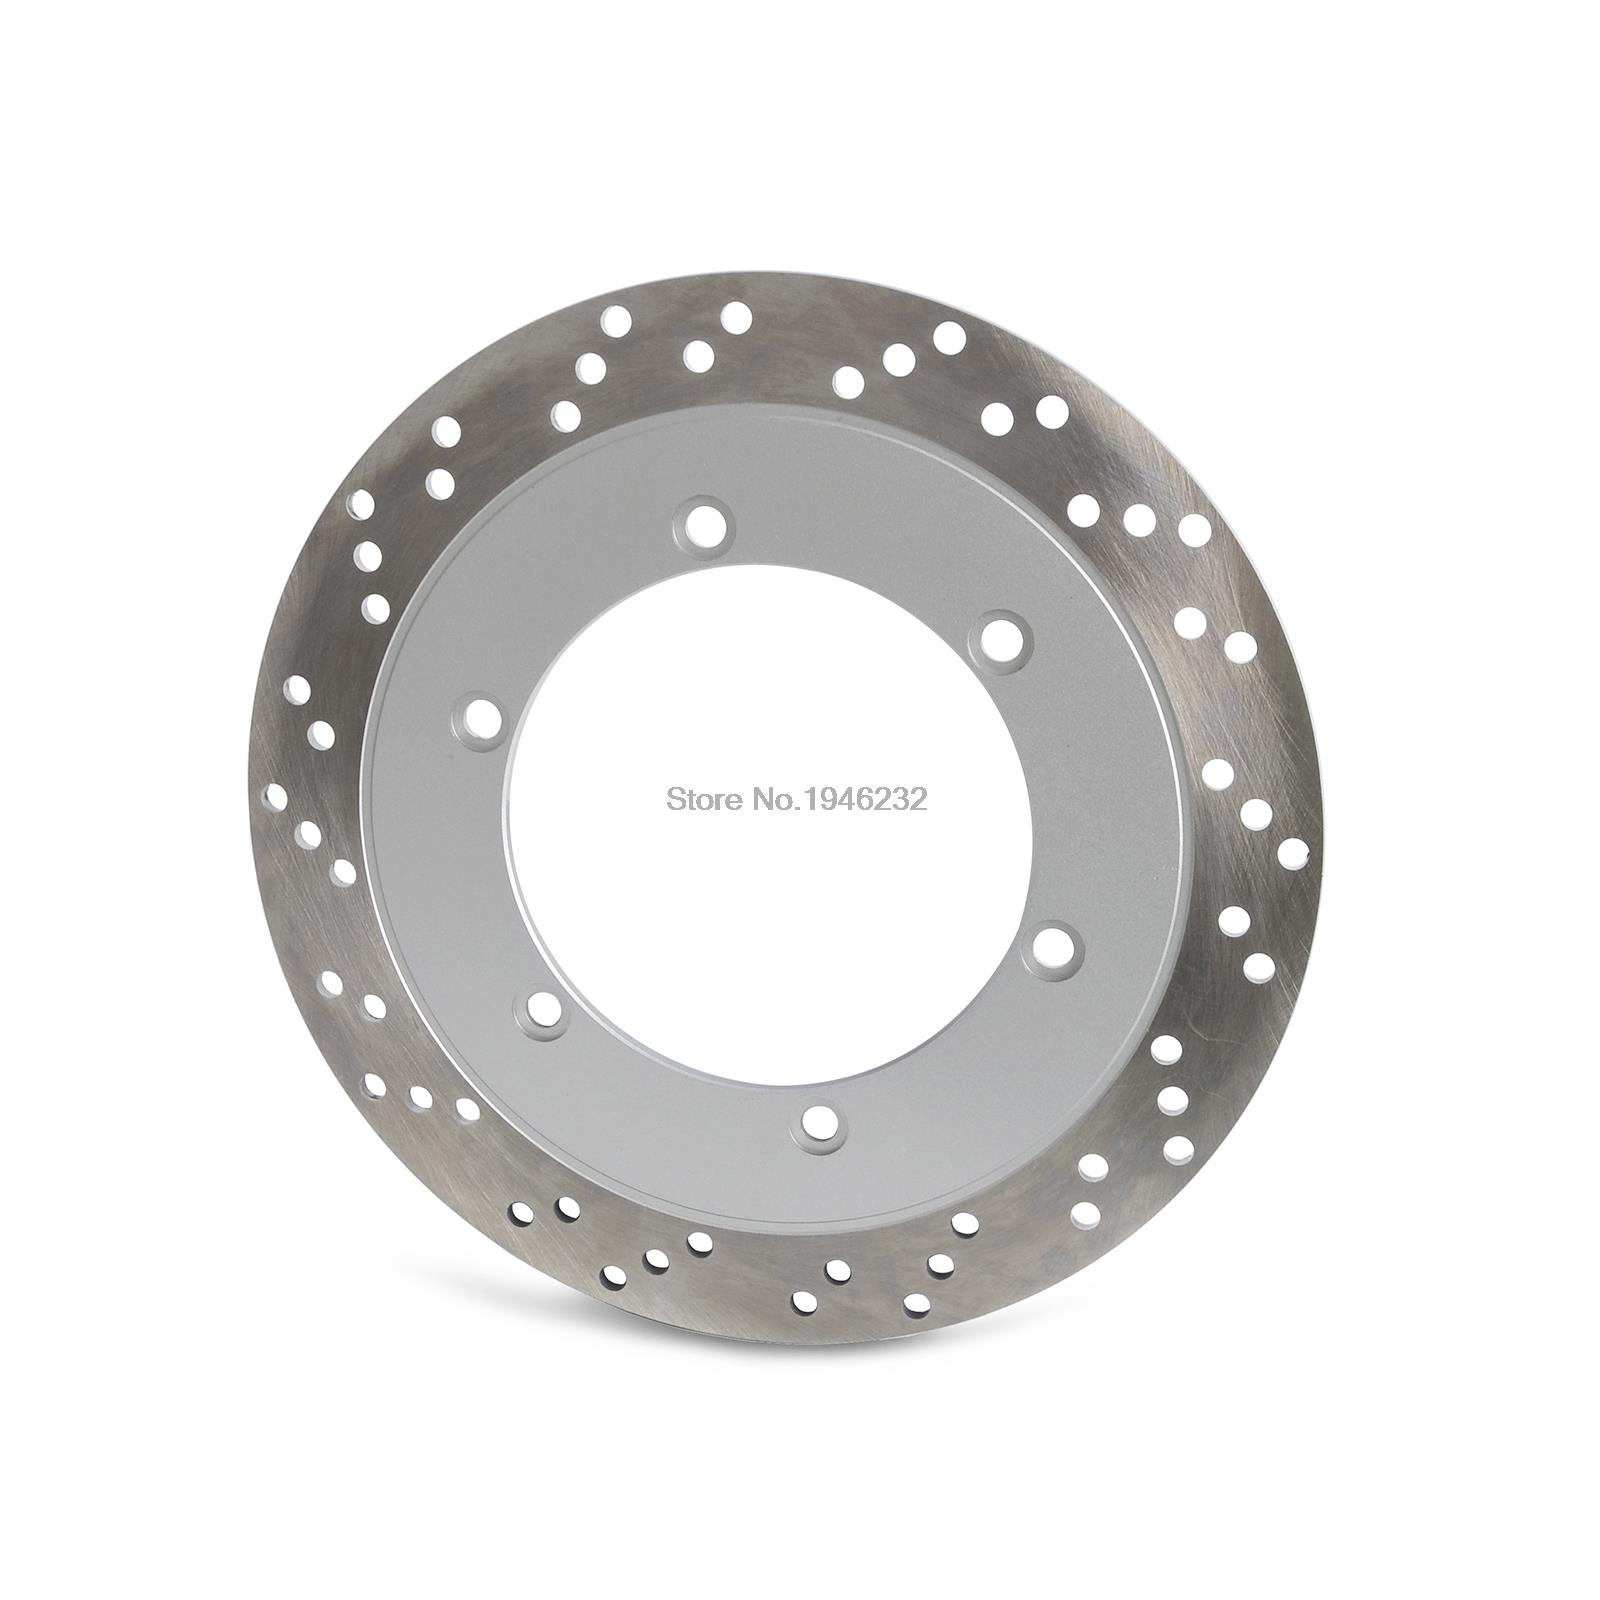 Motorcycle Front Brake Disc Rotor Fits  For Honda NV 400 DCY/DC1/DC2 (NC40)Shadow Slasher 00-02 modern luxury yellow beige grey 3d textured wallpaper for walls geometric wall paper rolls for bedroom living room sofa decor